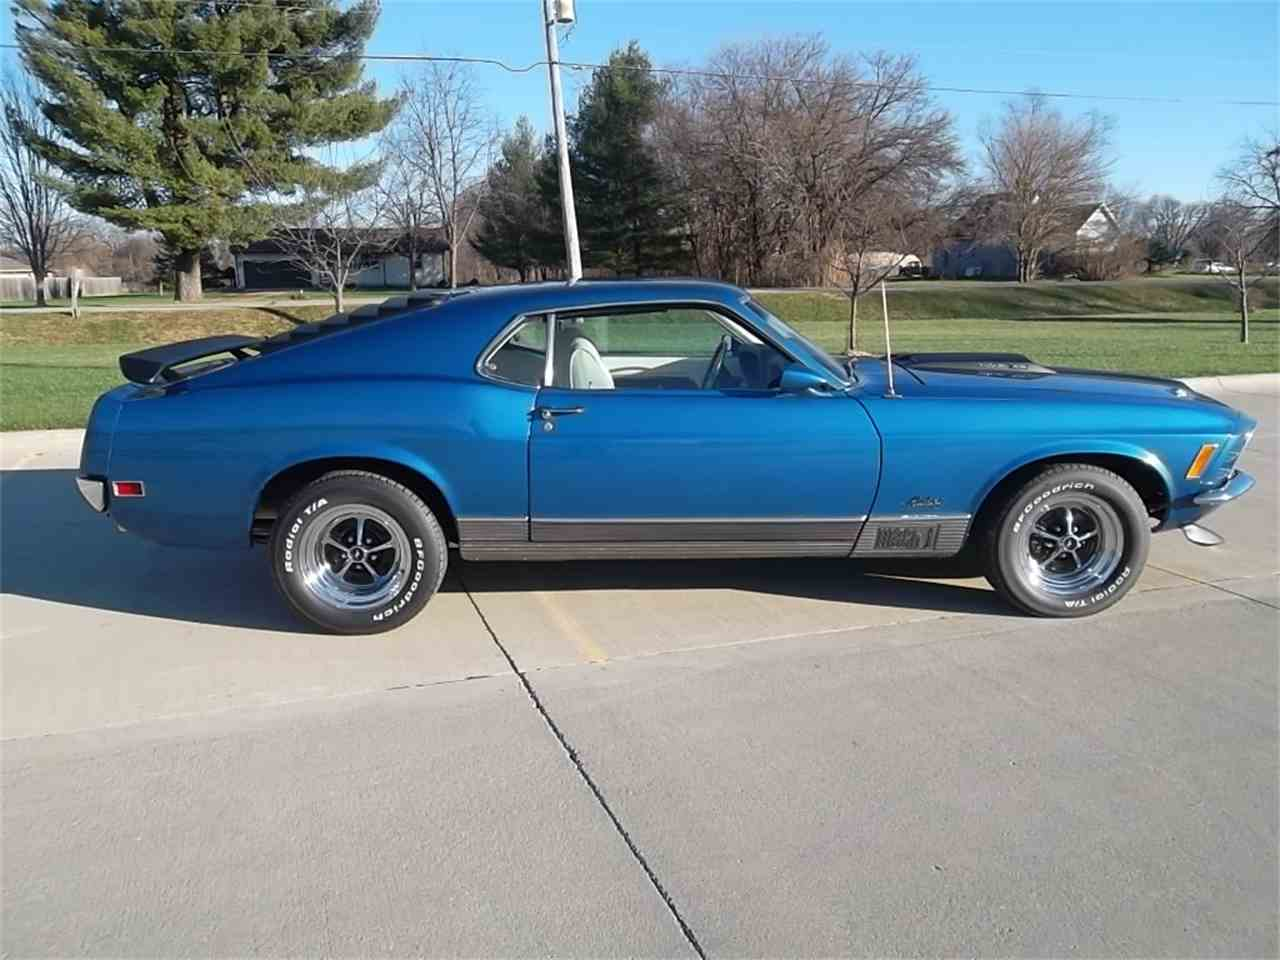 Large Picture of Classic '70 Ford Mustang Mach 1  located in Iowa - $35,500.00 - KCJ1